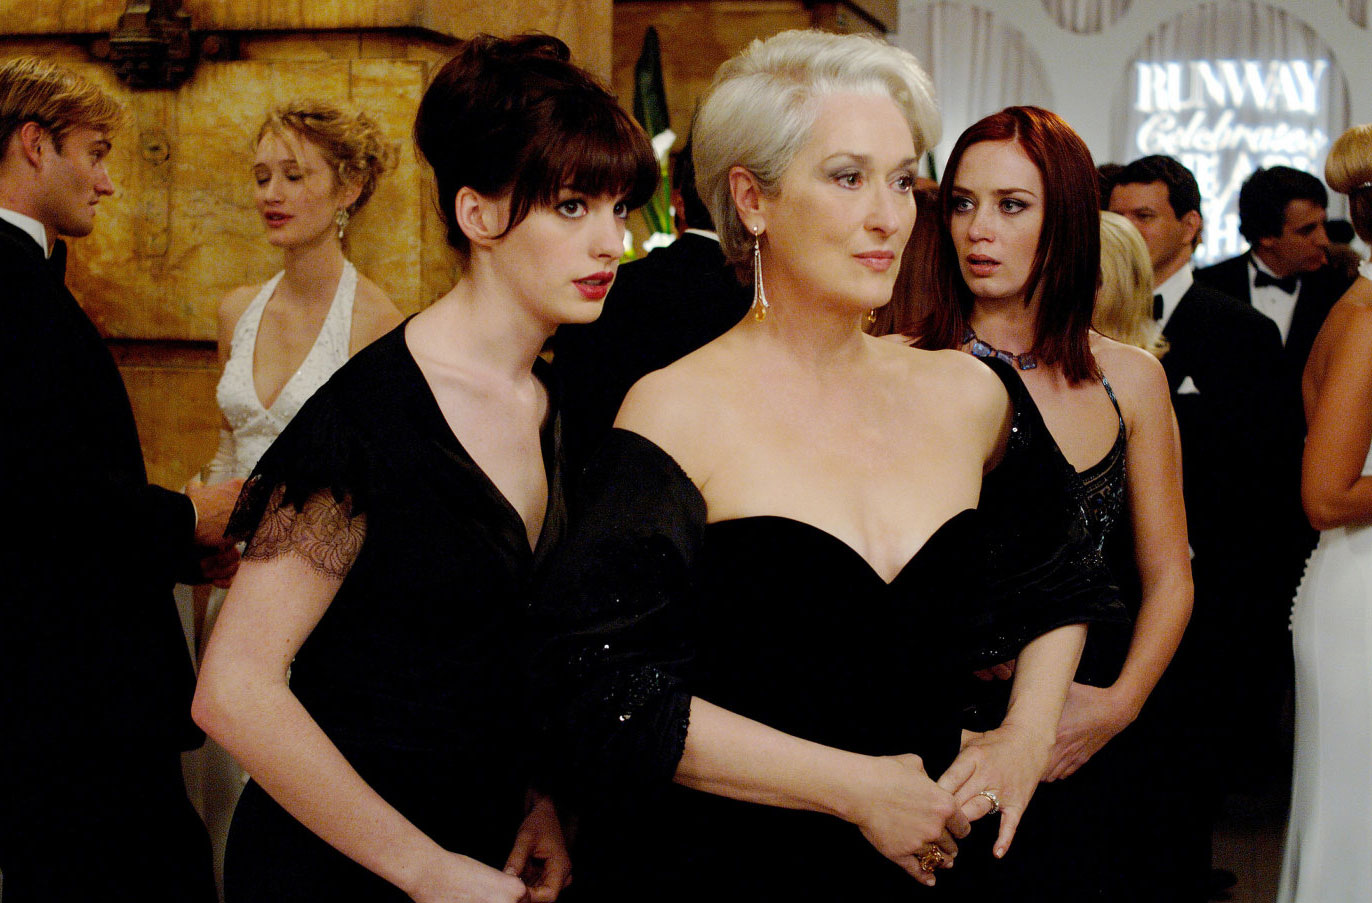 The Devil Wears Prada is based on the book of the same name by Lauren Weisberger. The movie grossed $300 million, yet no sequel has materialized. According to Lauren, it's because it's hard to get Anne Hathaway, Emily Blunt and Meryl Streep's schedules to coincide. However, there is a glimmer of hope – Lauren wrote […]